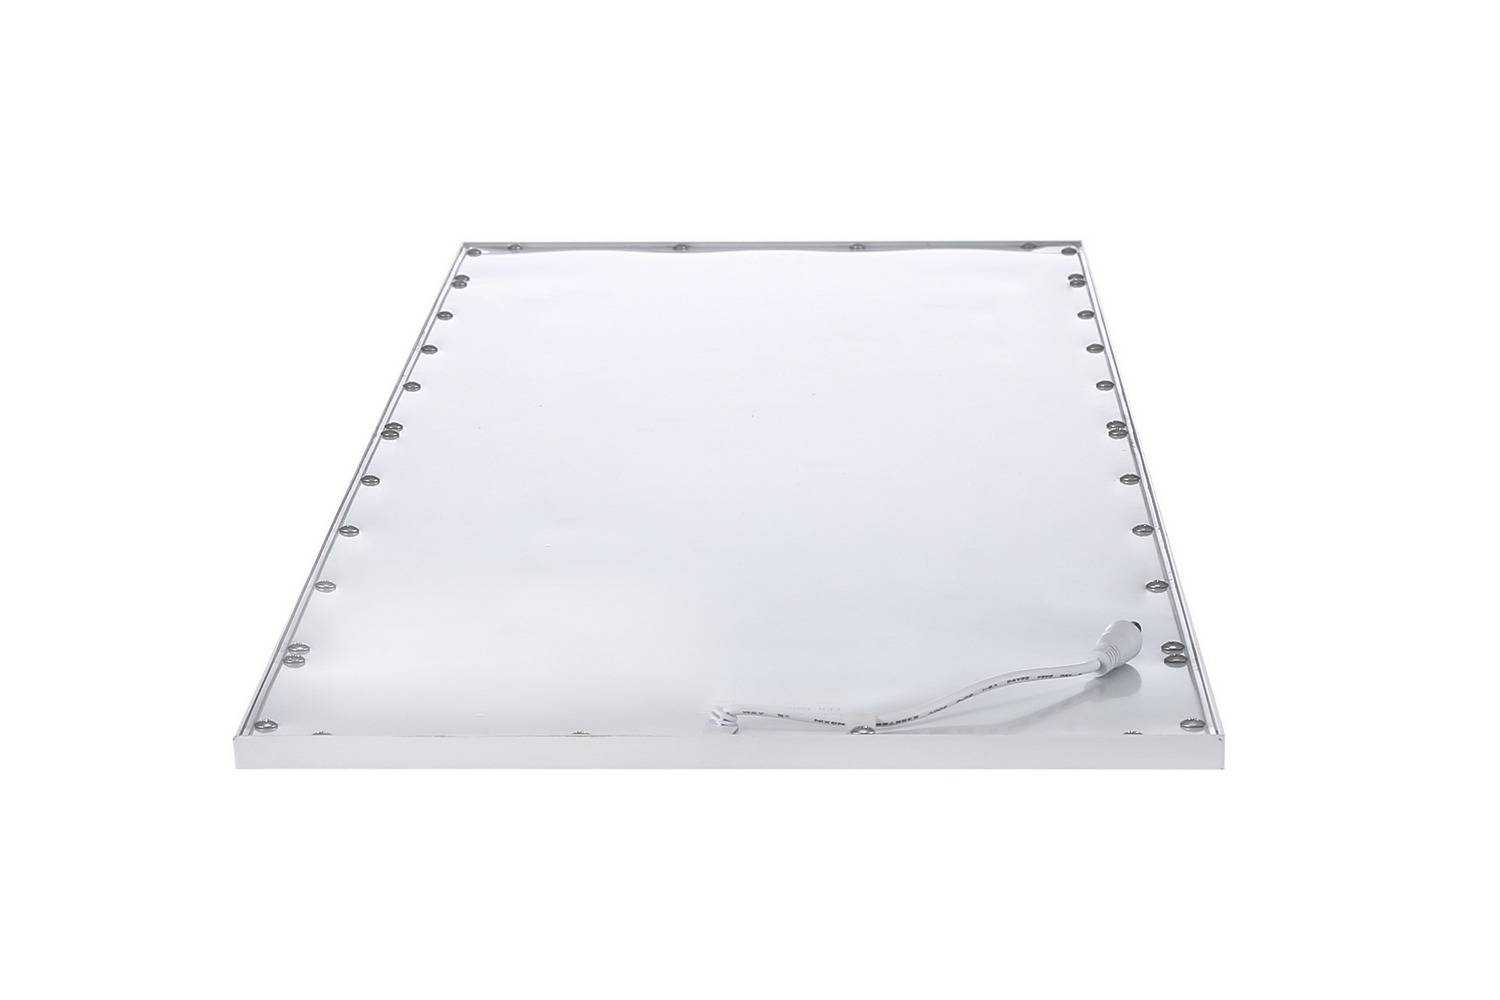 LED panel 30x120 edge-lit panel 300x1200 ultra-thin led flat panel light Europe UK CE CB OHS TUV 4